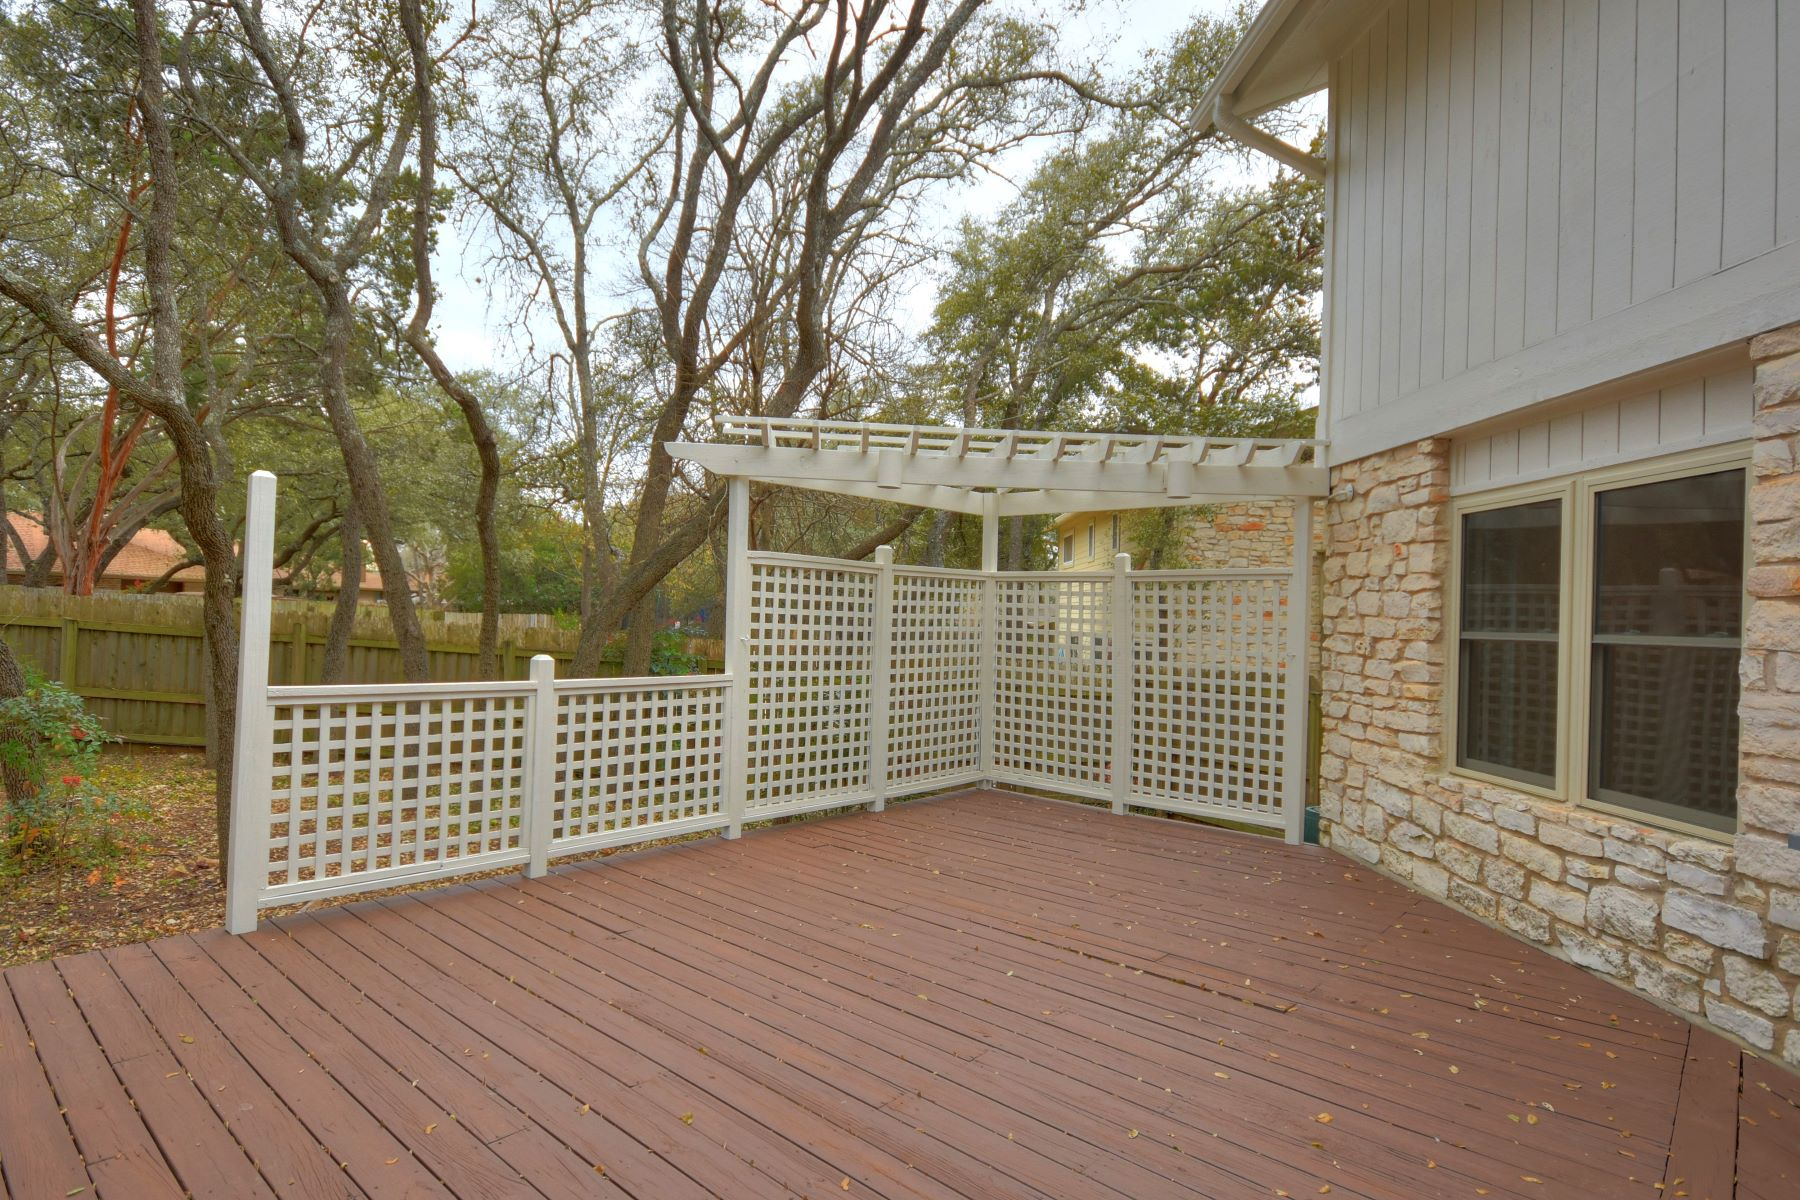 Additional photo for property listing at 1503 Falcon Ledge Drive 1503 Falcon Ledge Dr Austin, Texas 78746 United States